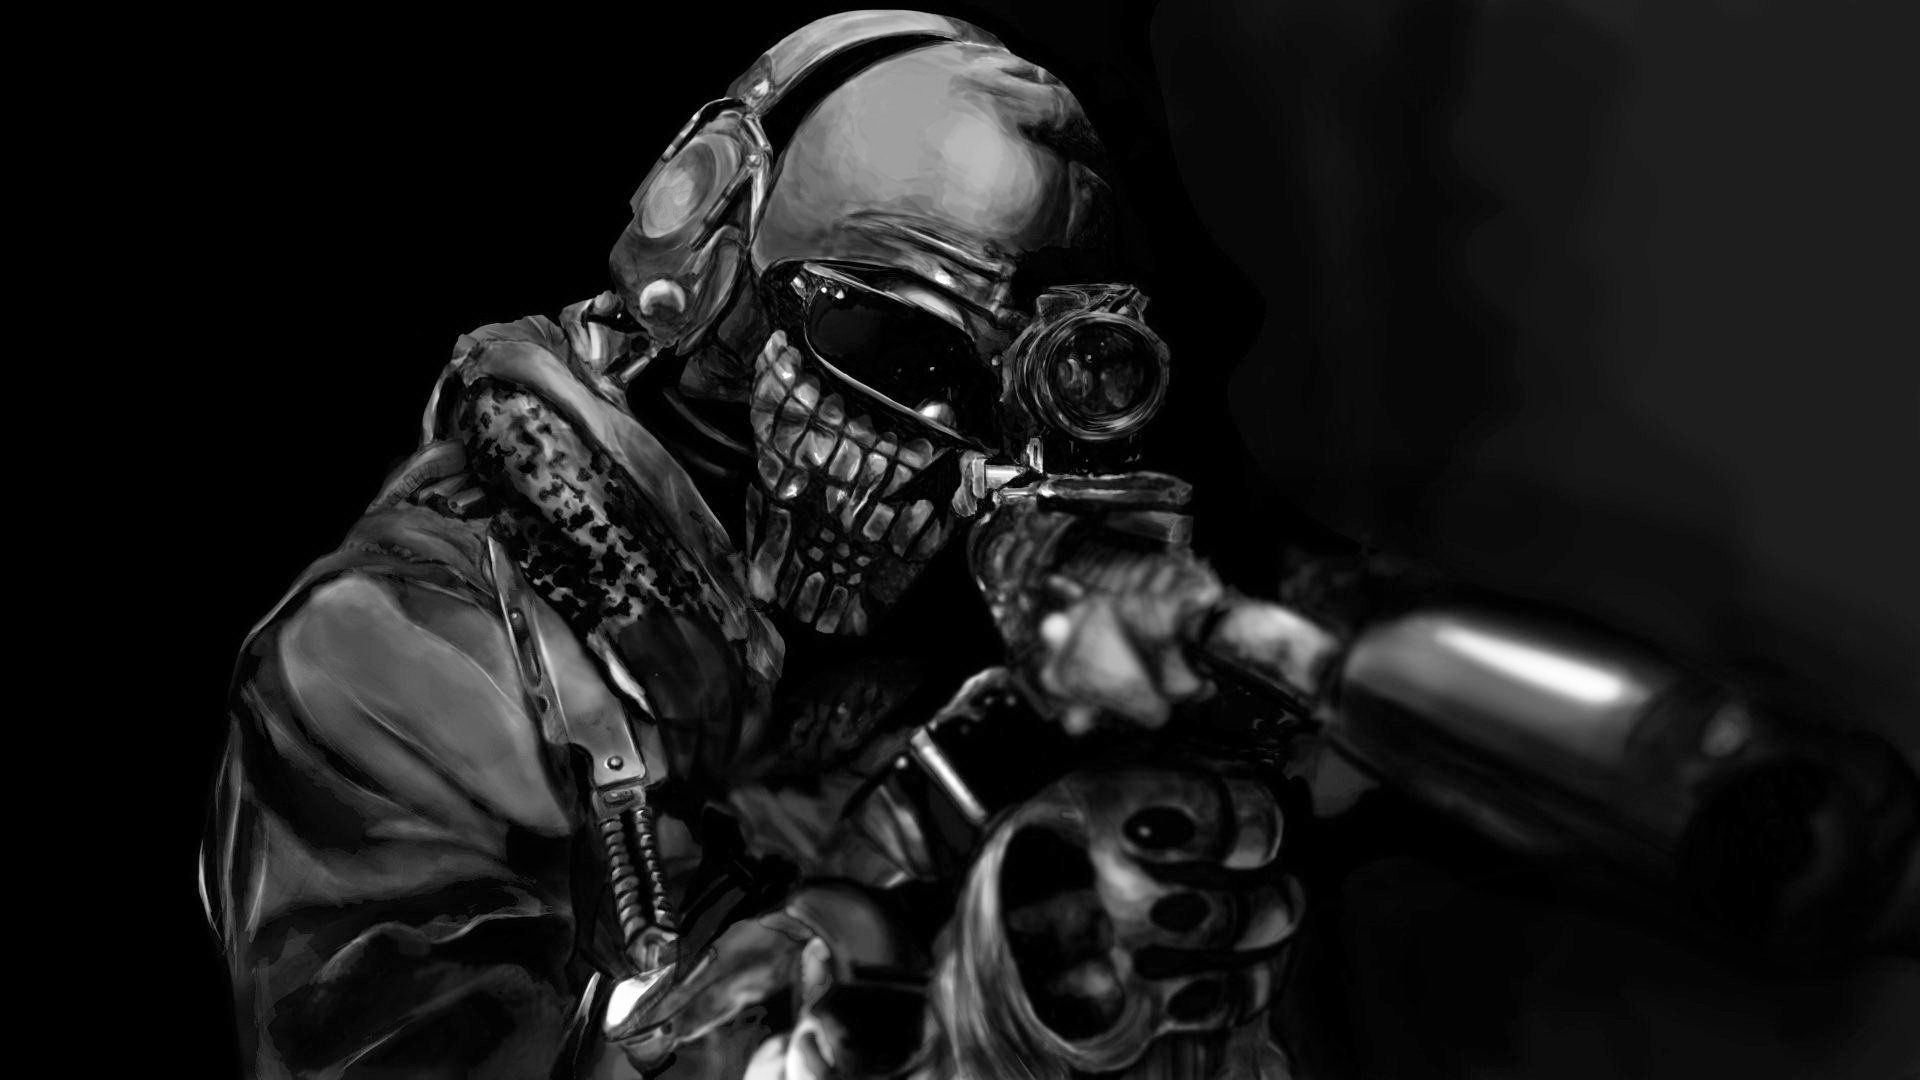 Call of Duty Ghosts Wallpapers 1920x1080 in HD | Call of Duty